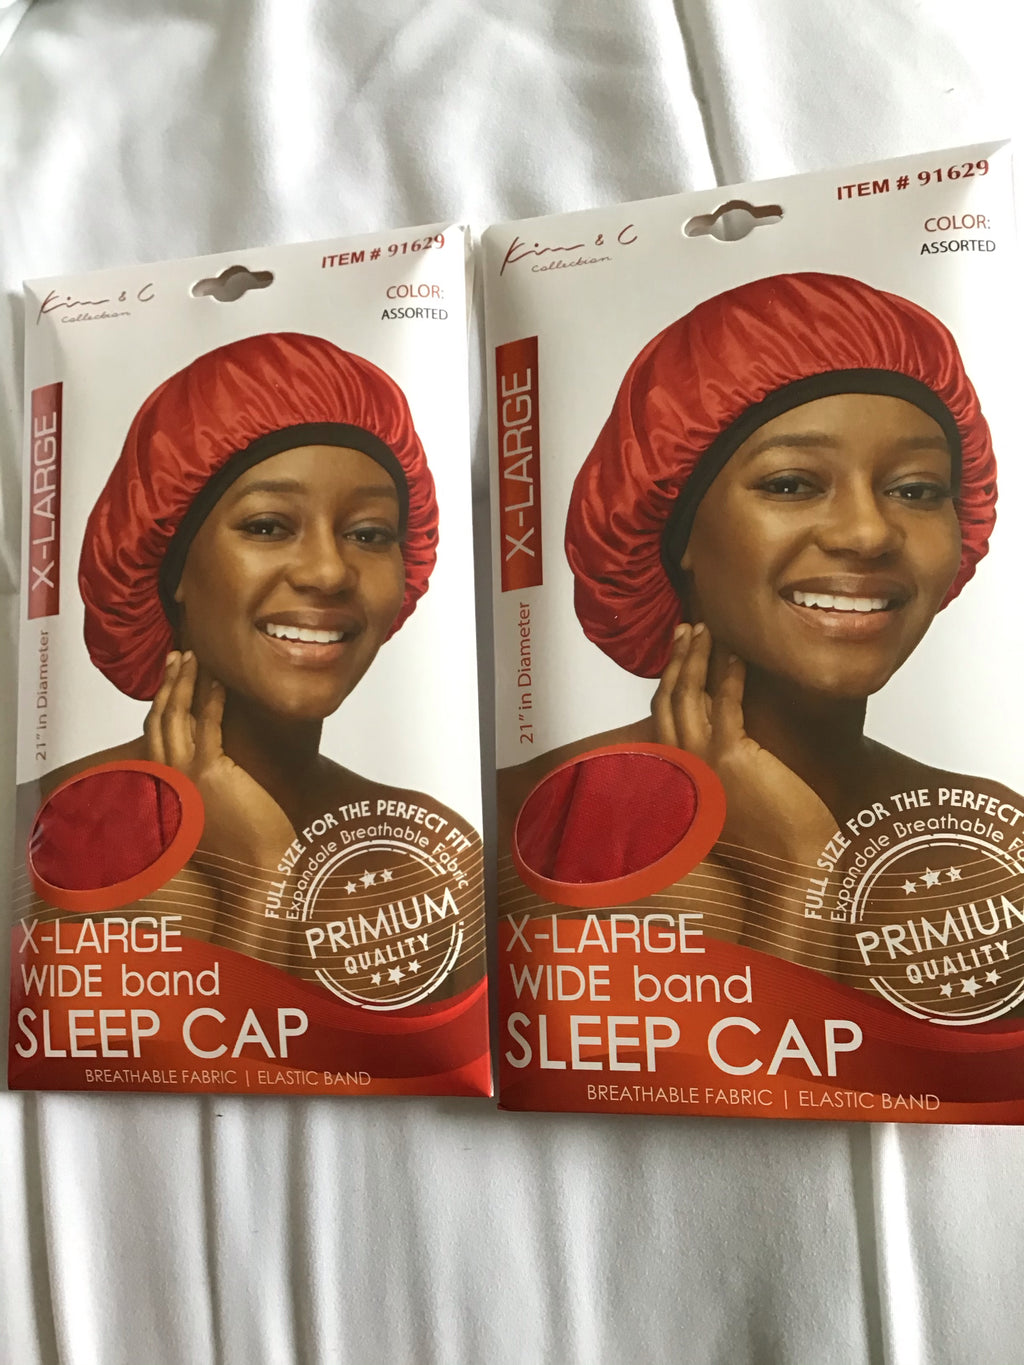 X-LARGE WIDE BAND SLEEP CAP #91629